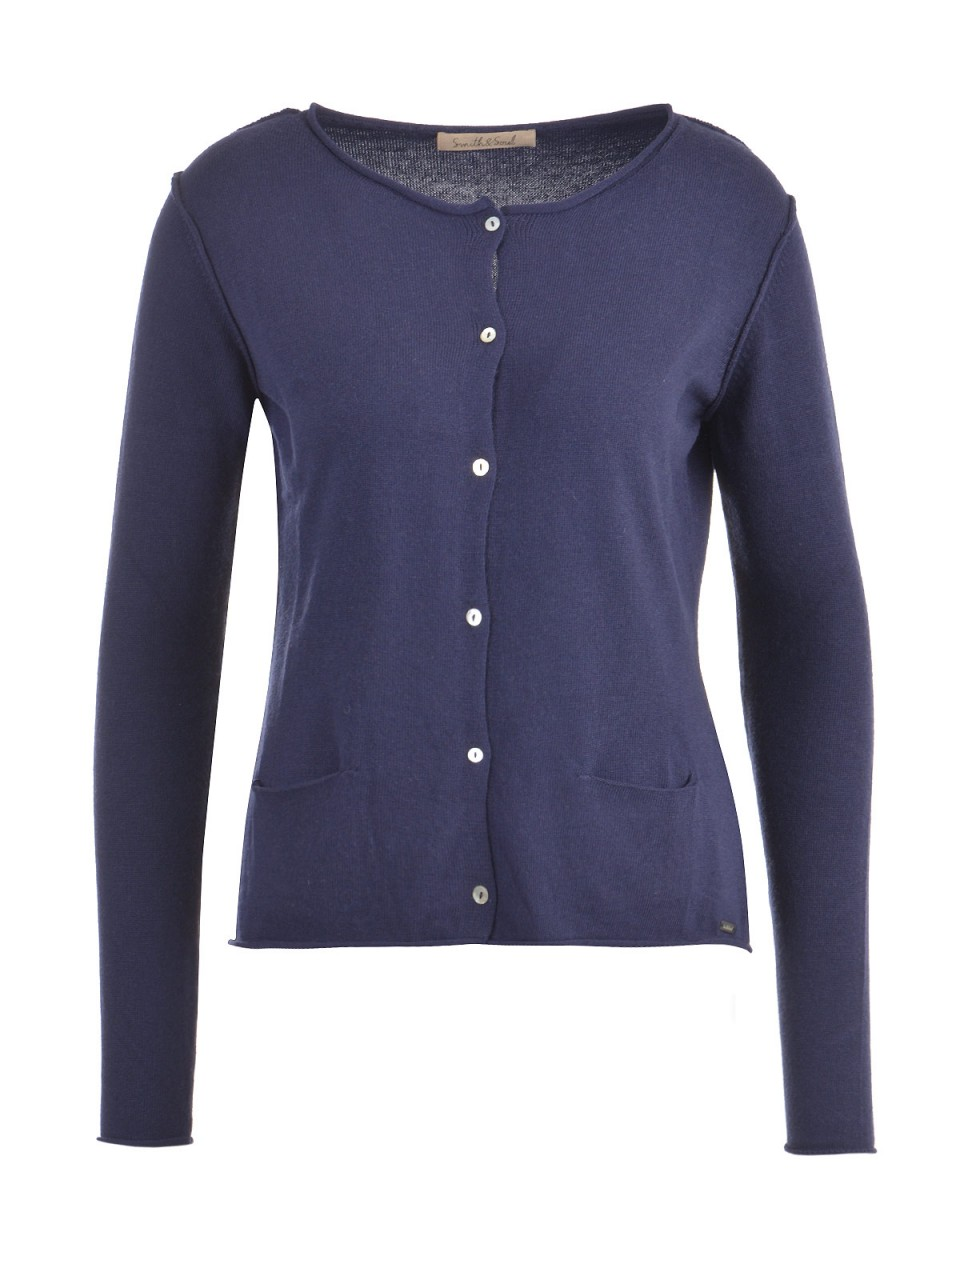 Jacken - SMITH SOUL Damen Strickjacke, navy  - Onlineshop Designermode.com